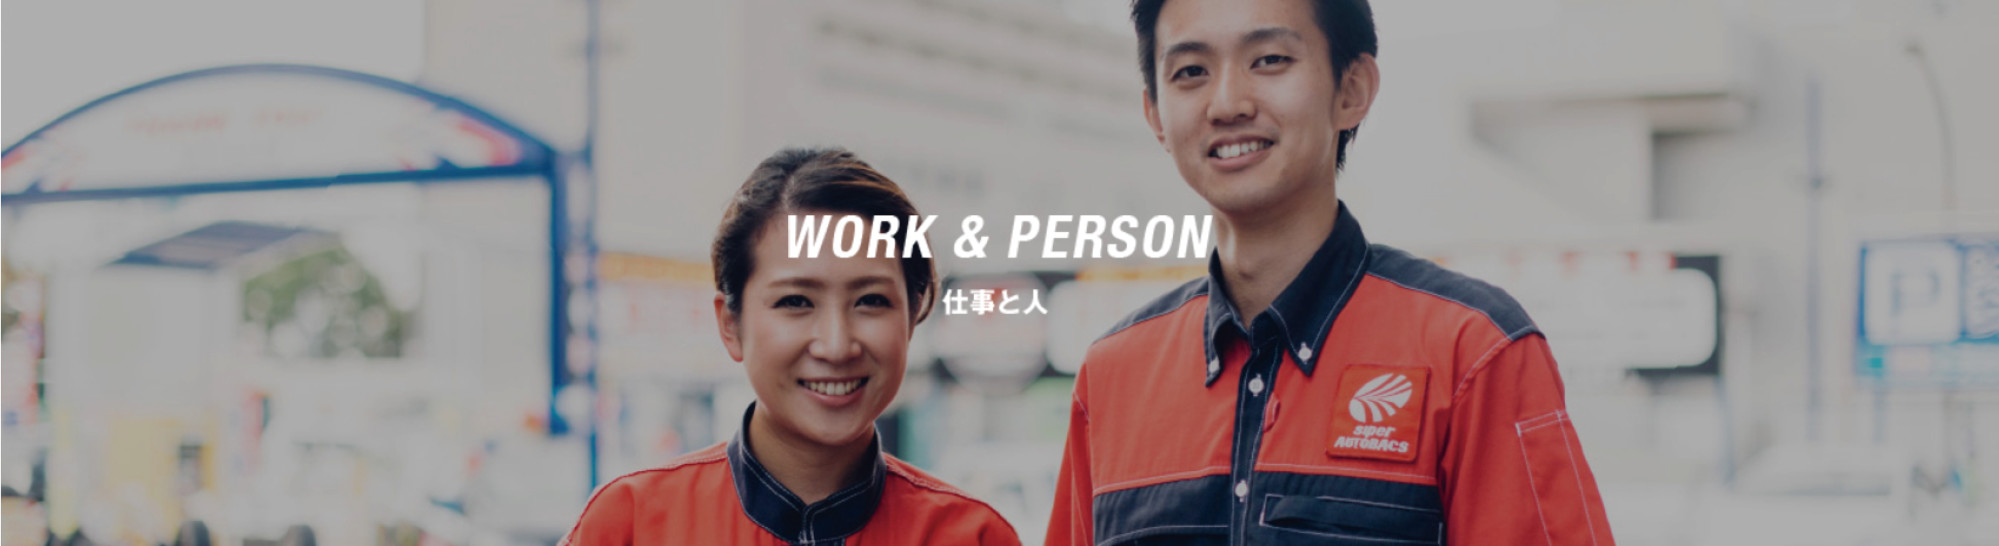 WORK&PERSON 仕事と人